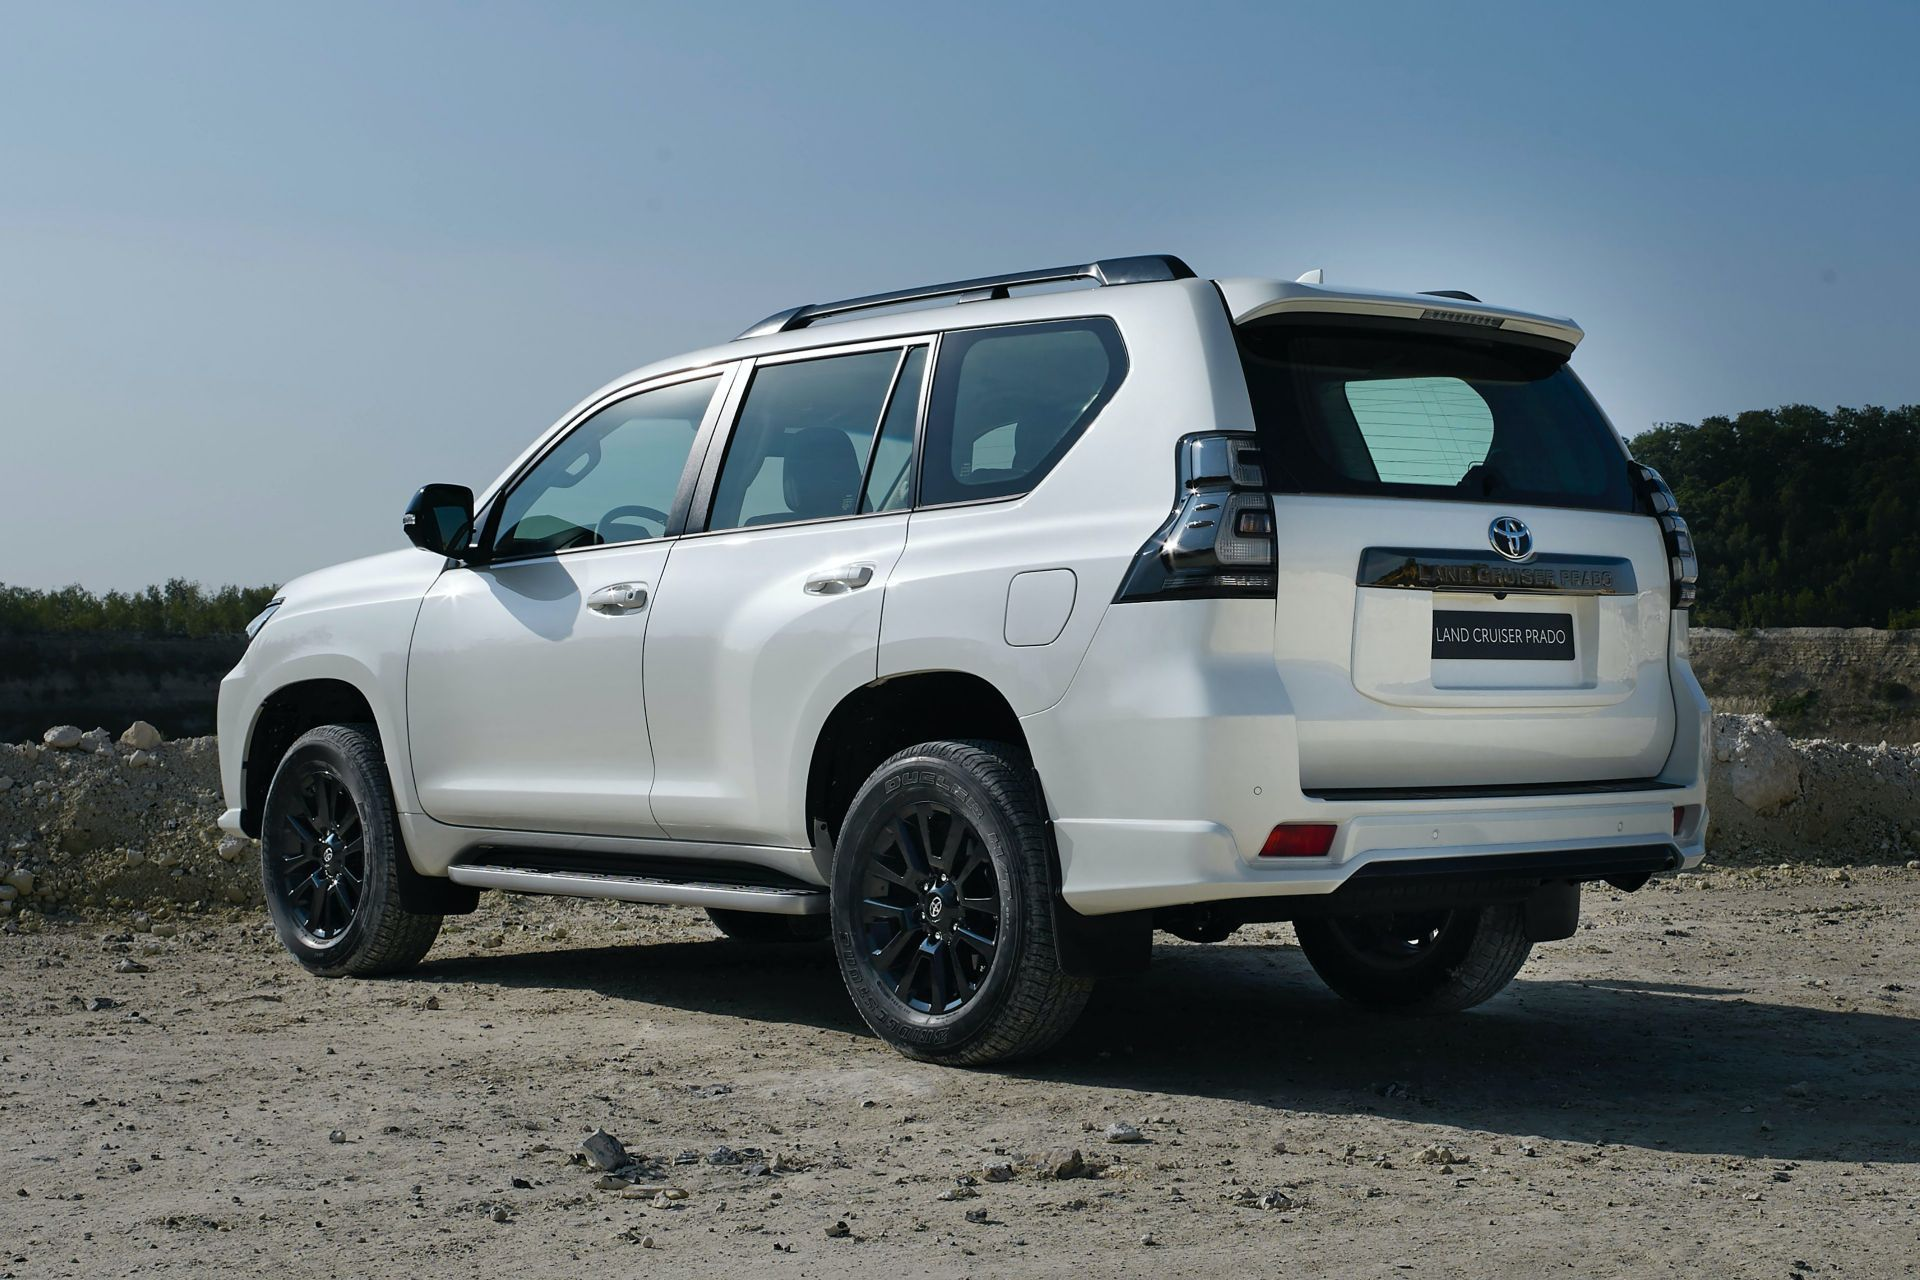 Toyota-Land-Cruiser-euro-2021-69